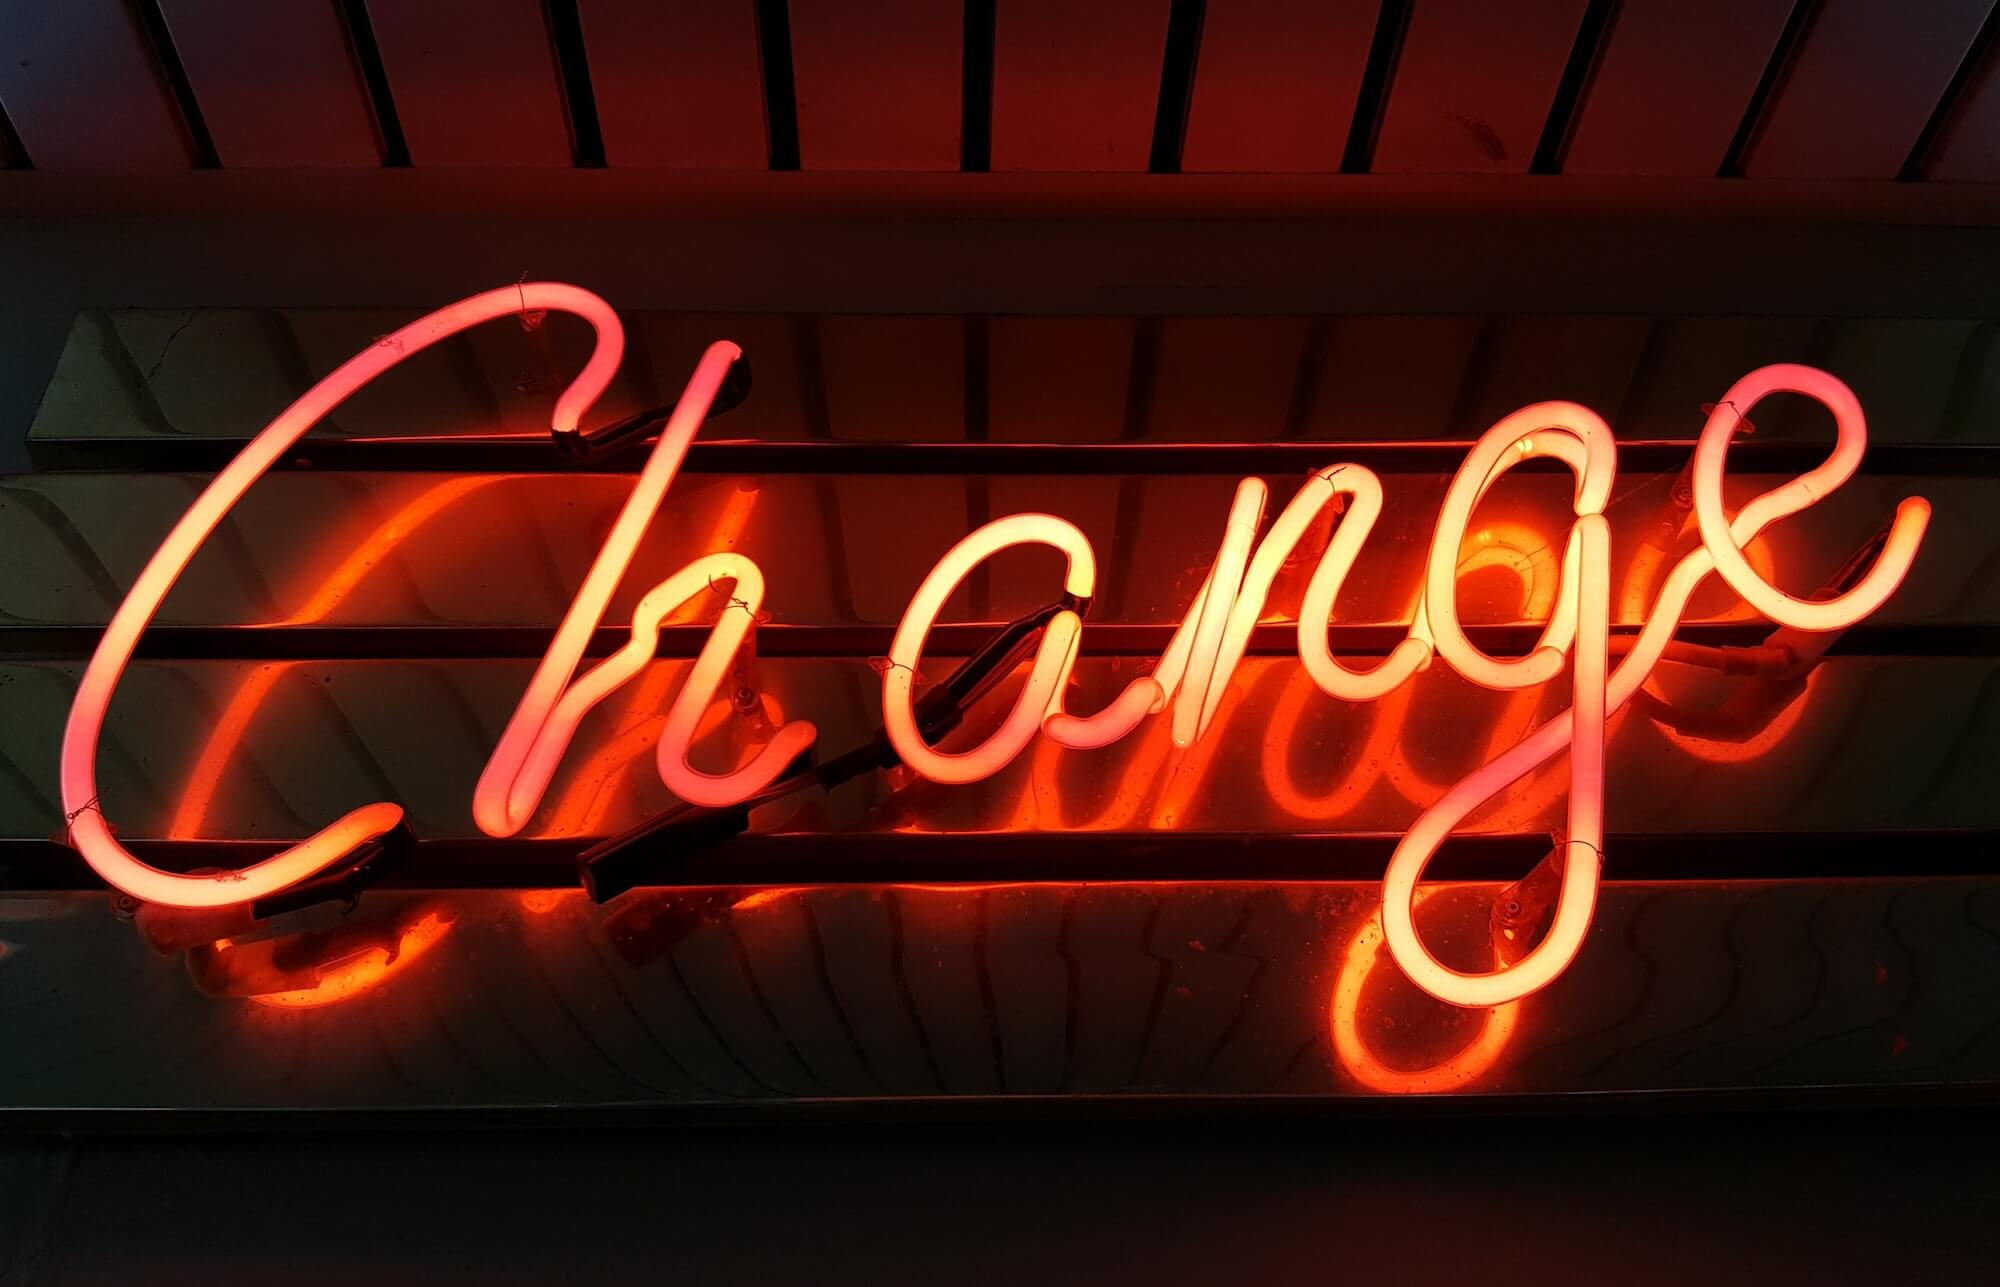 Embracing Change: A Values-Based Approach